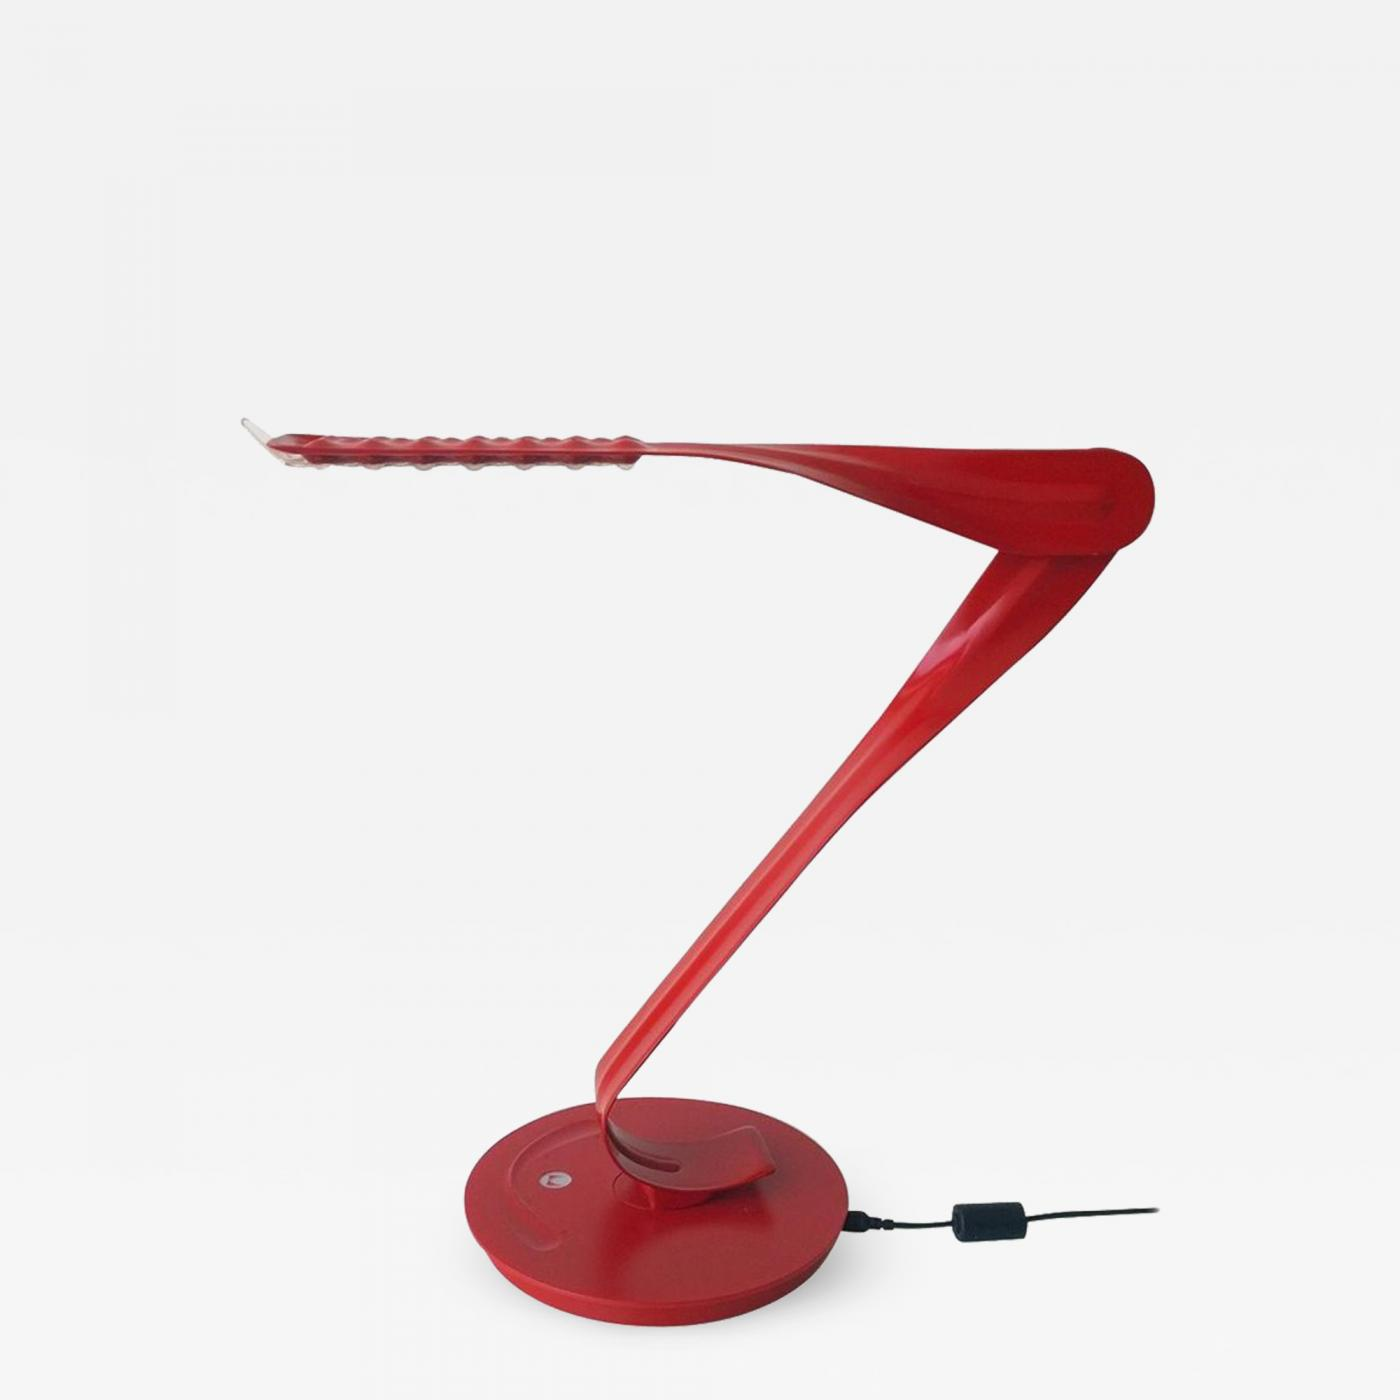 Desk Lamp Herman Miller 20th 21st Century Modern Red Enameled Signed Leaf Led Desk Lamp By Yves Behar